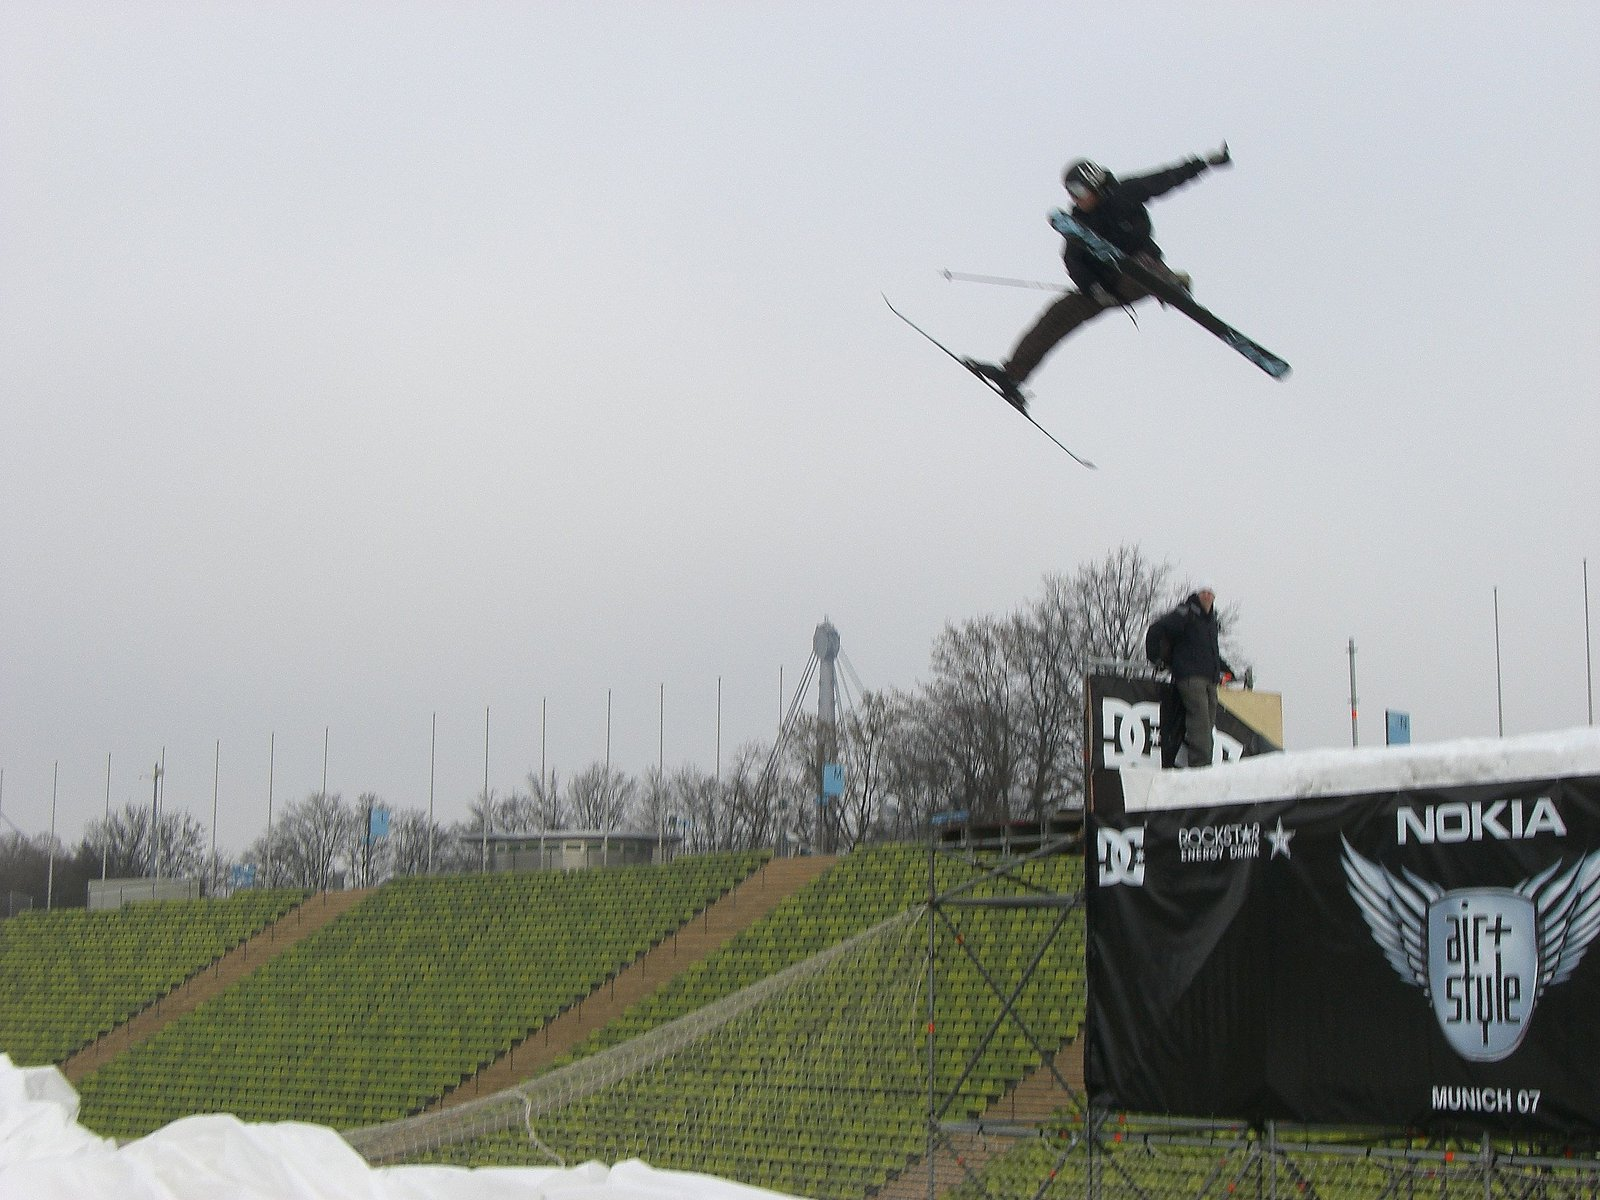 saluting the air&style jump